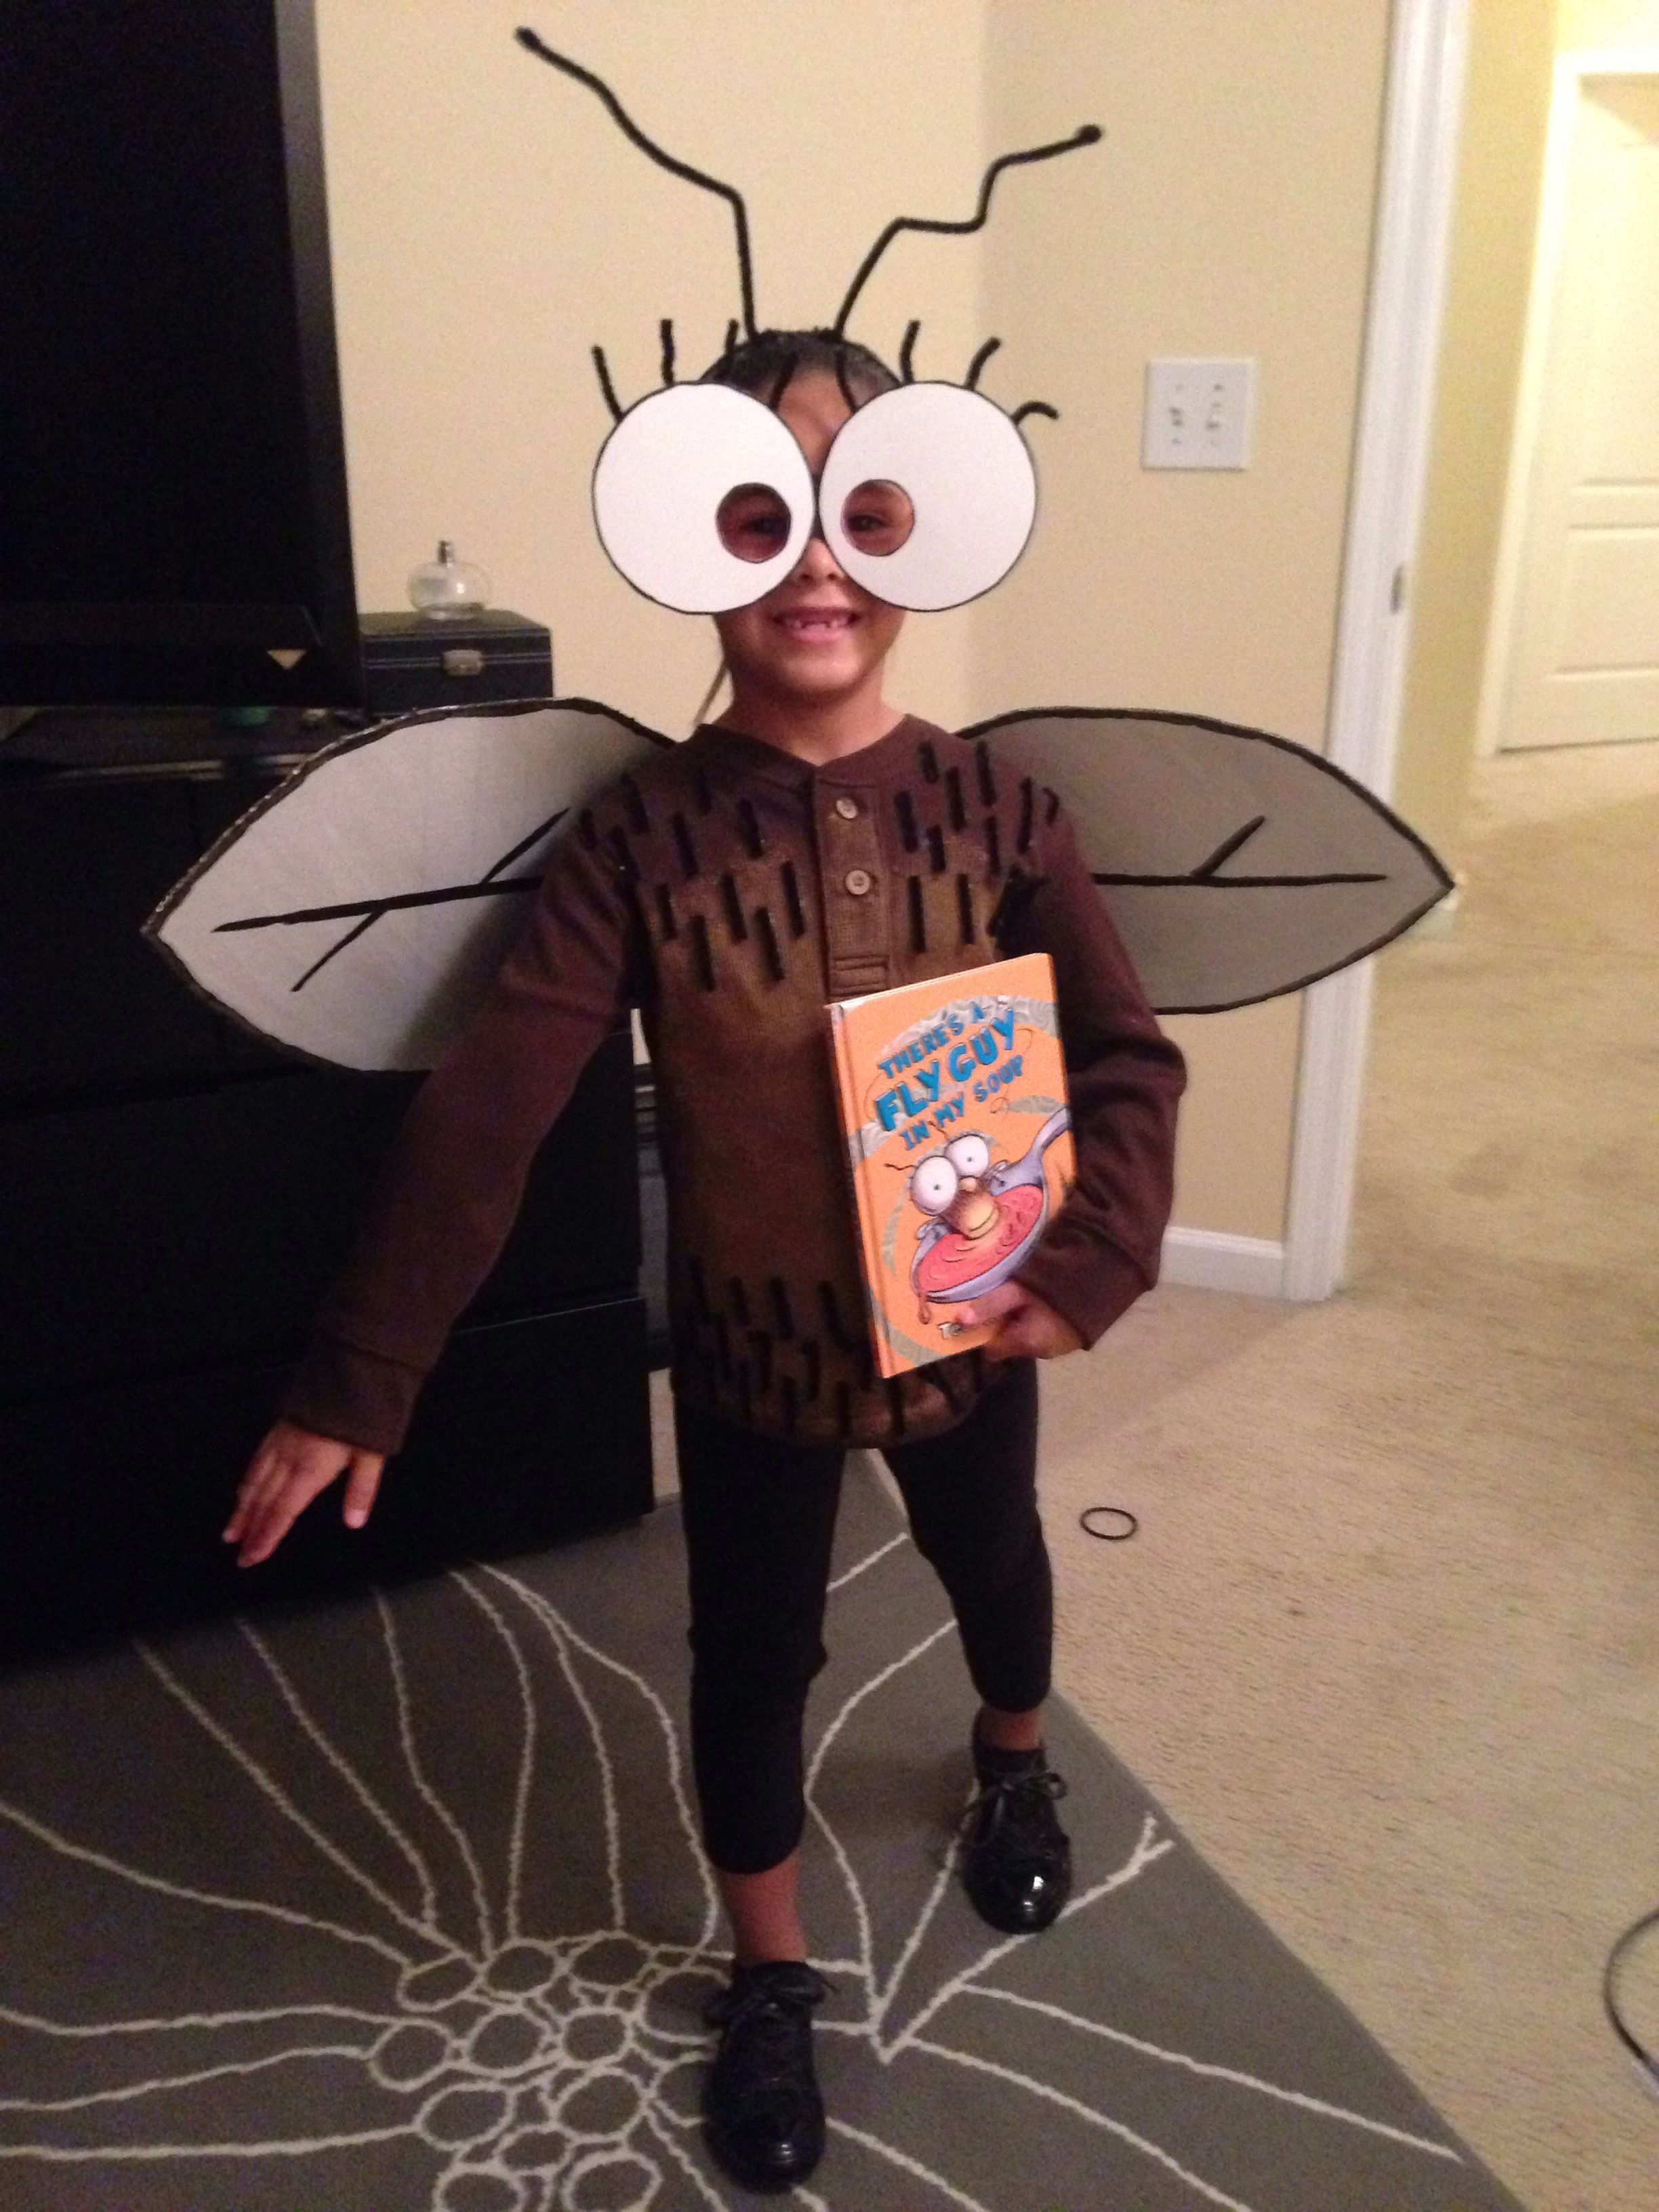 Homemade Fly guy costume for fall into books. Animal